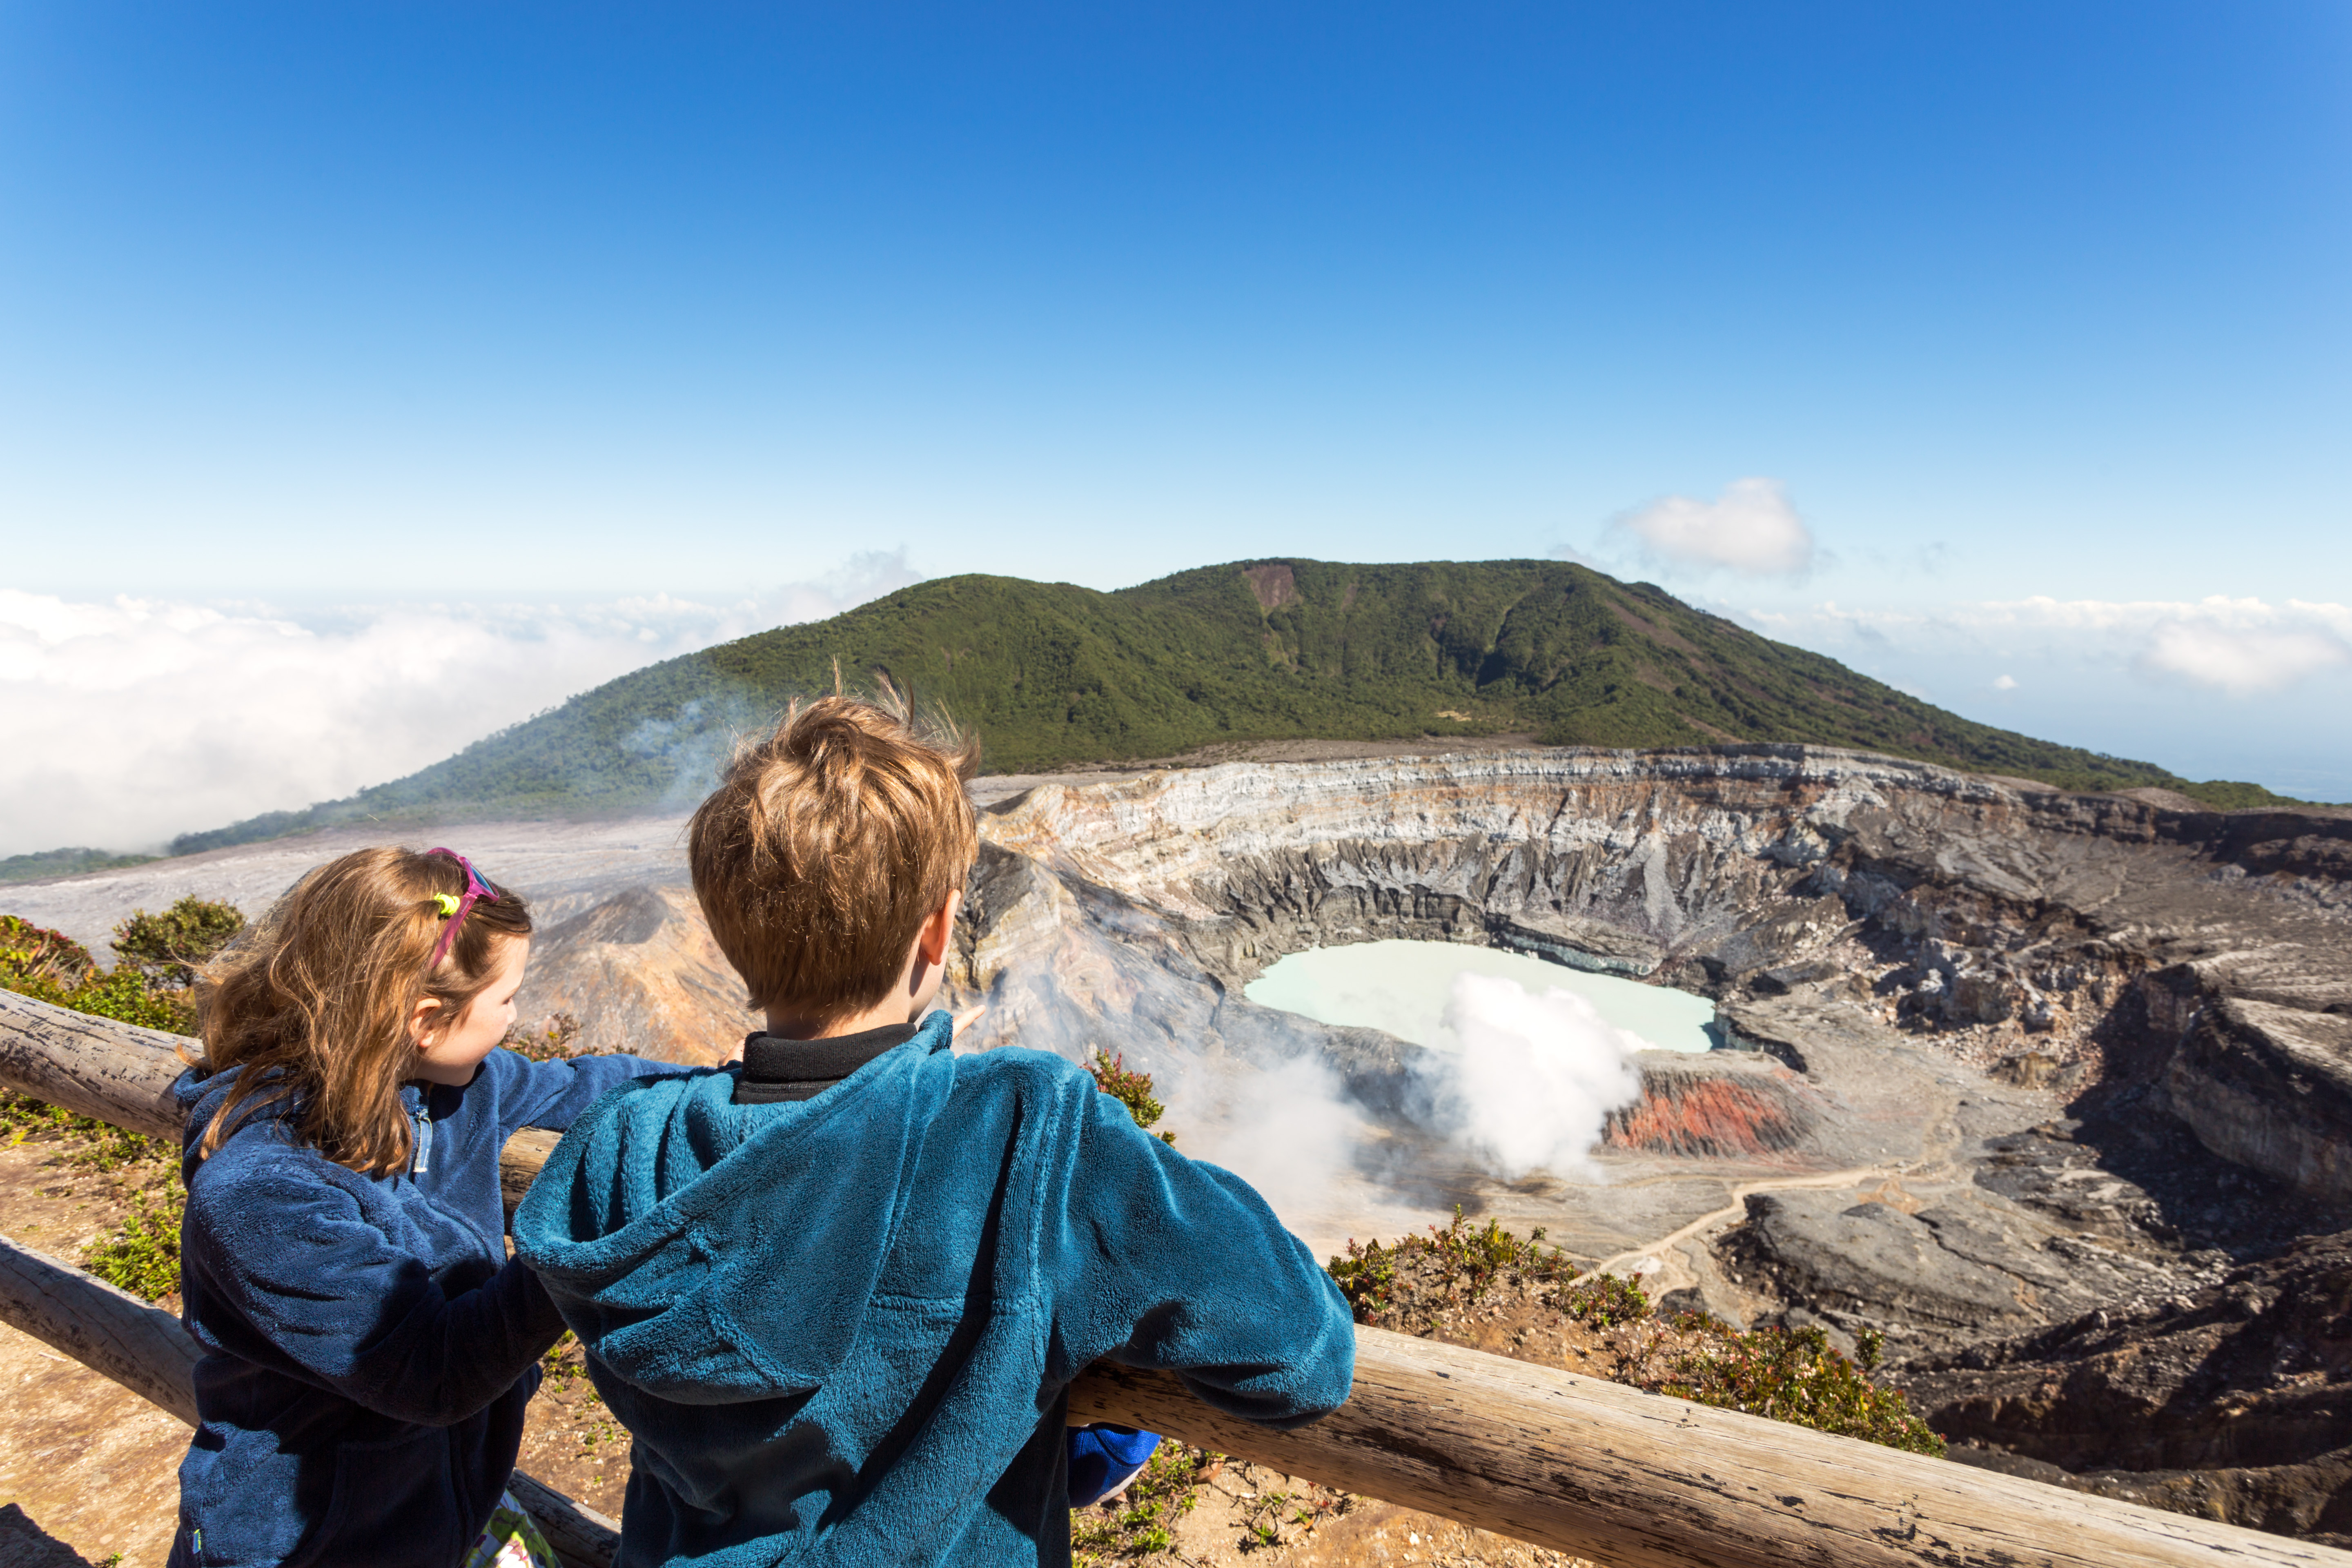 Two children looking into a volcano crater. Image by Matteo Colombo/Getty Images